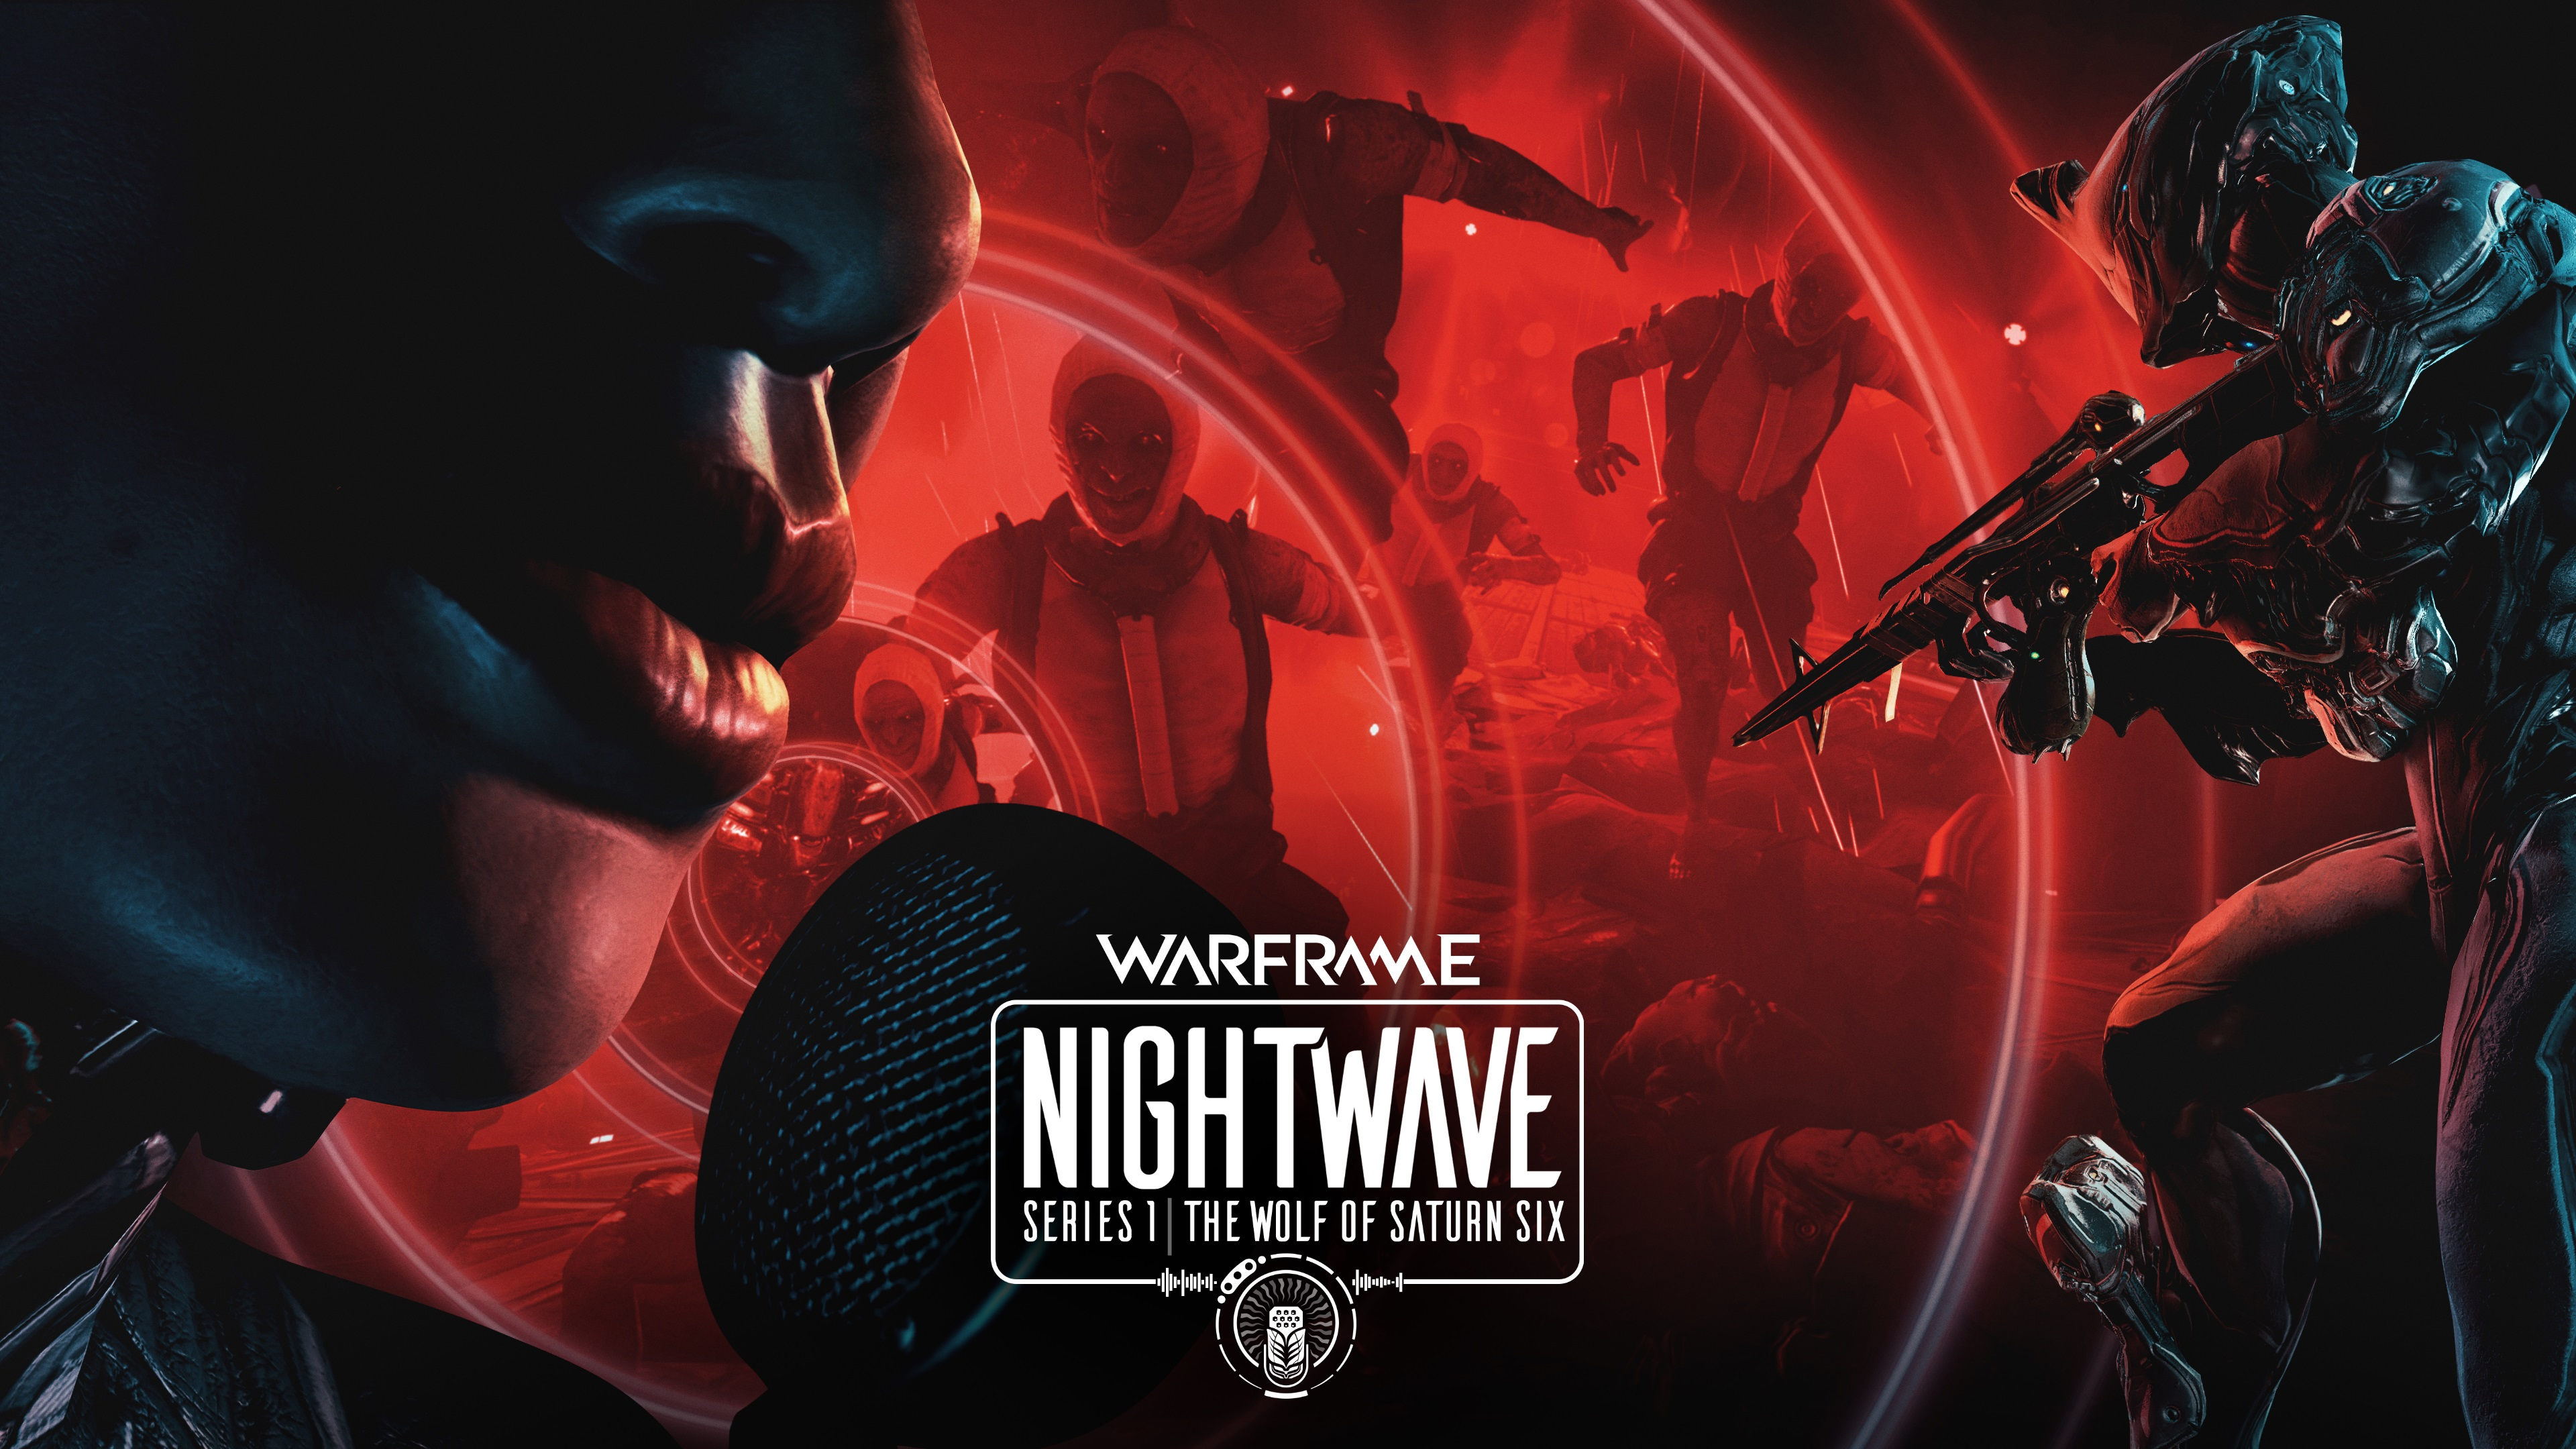 nightwave series 1